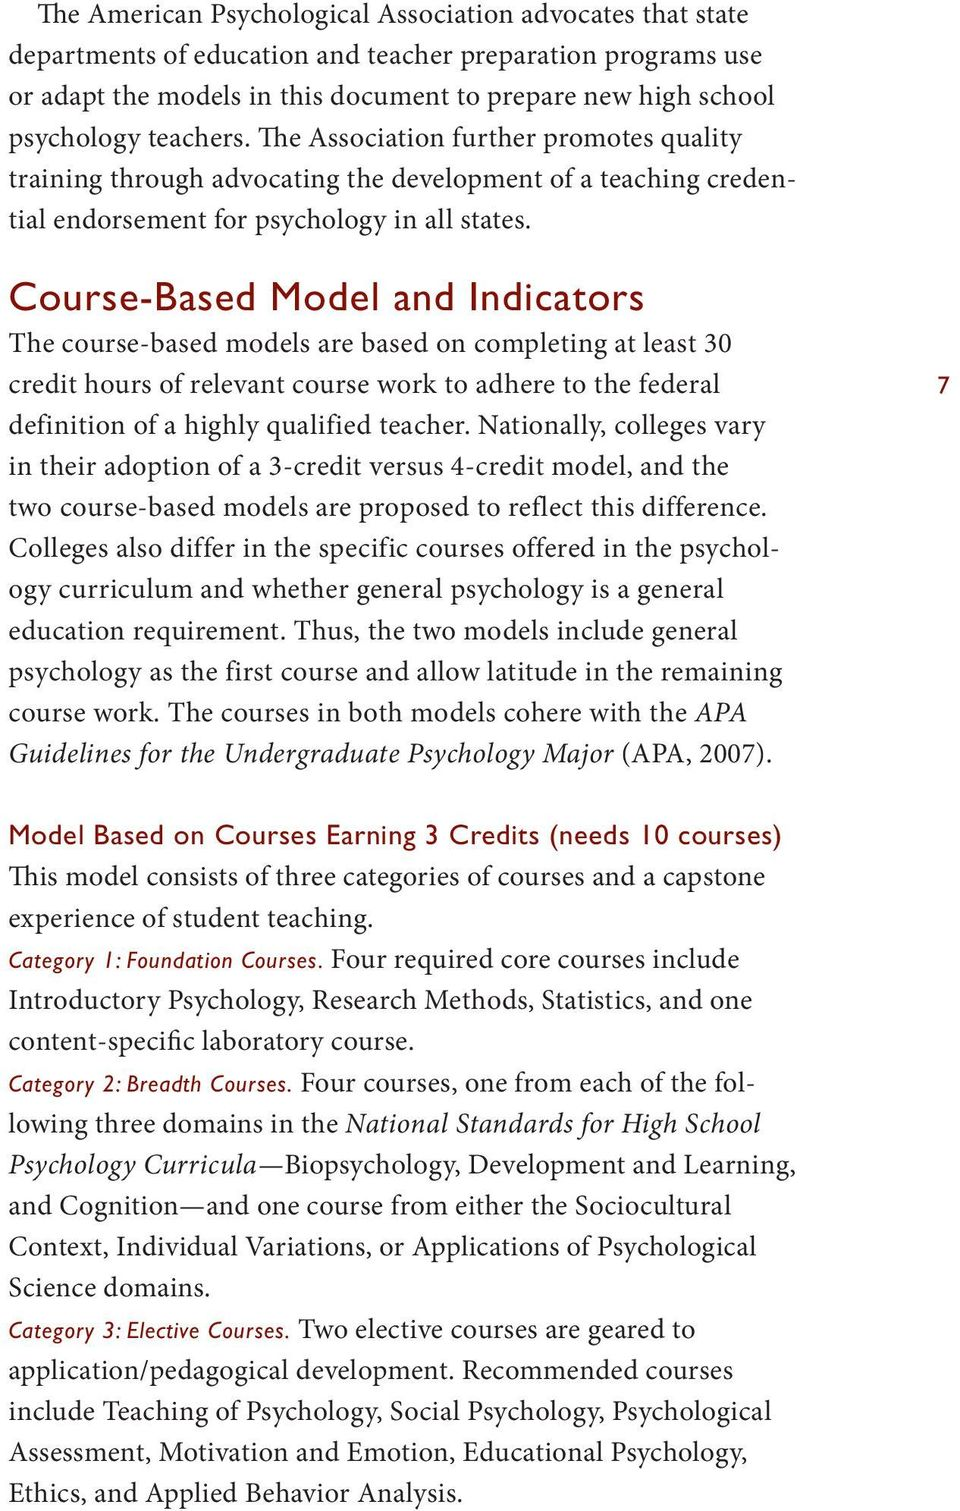 Course-Based Model and Indicators The course-based models are based on completing at least 30 credit hours of relevant course work to adhere to the federal definition of a highly qualified teacher.